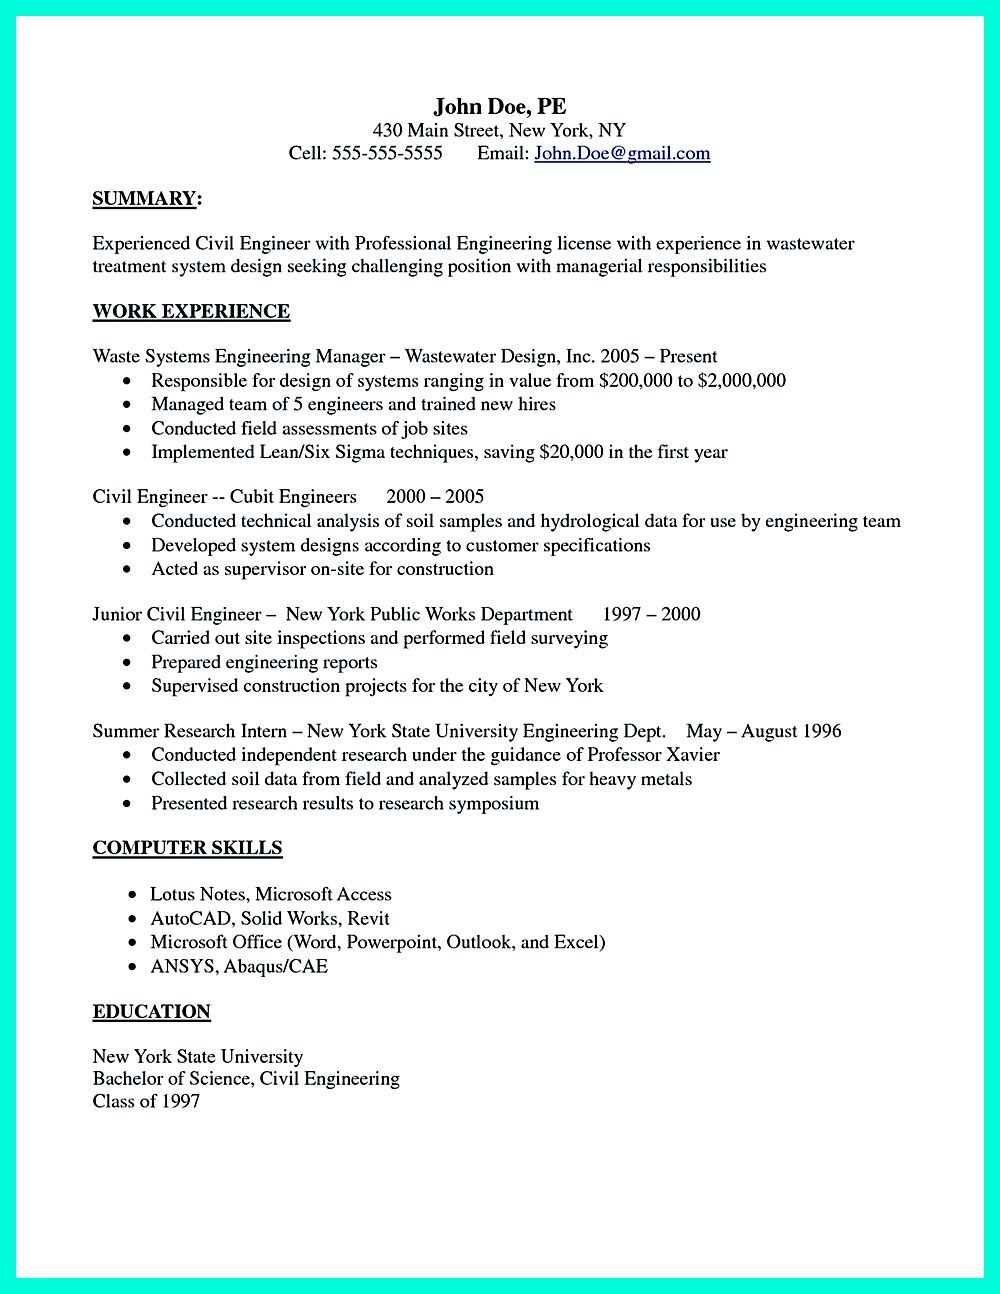 Resume Template Downloads There Are So Many Civil Engineering Resume Samples You Can